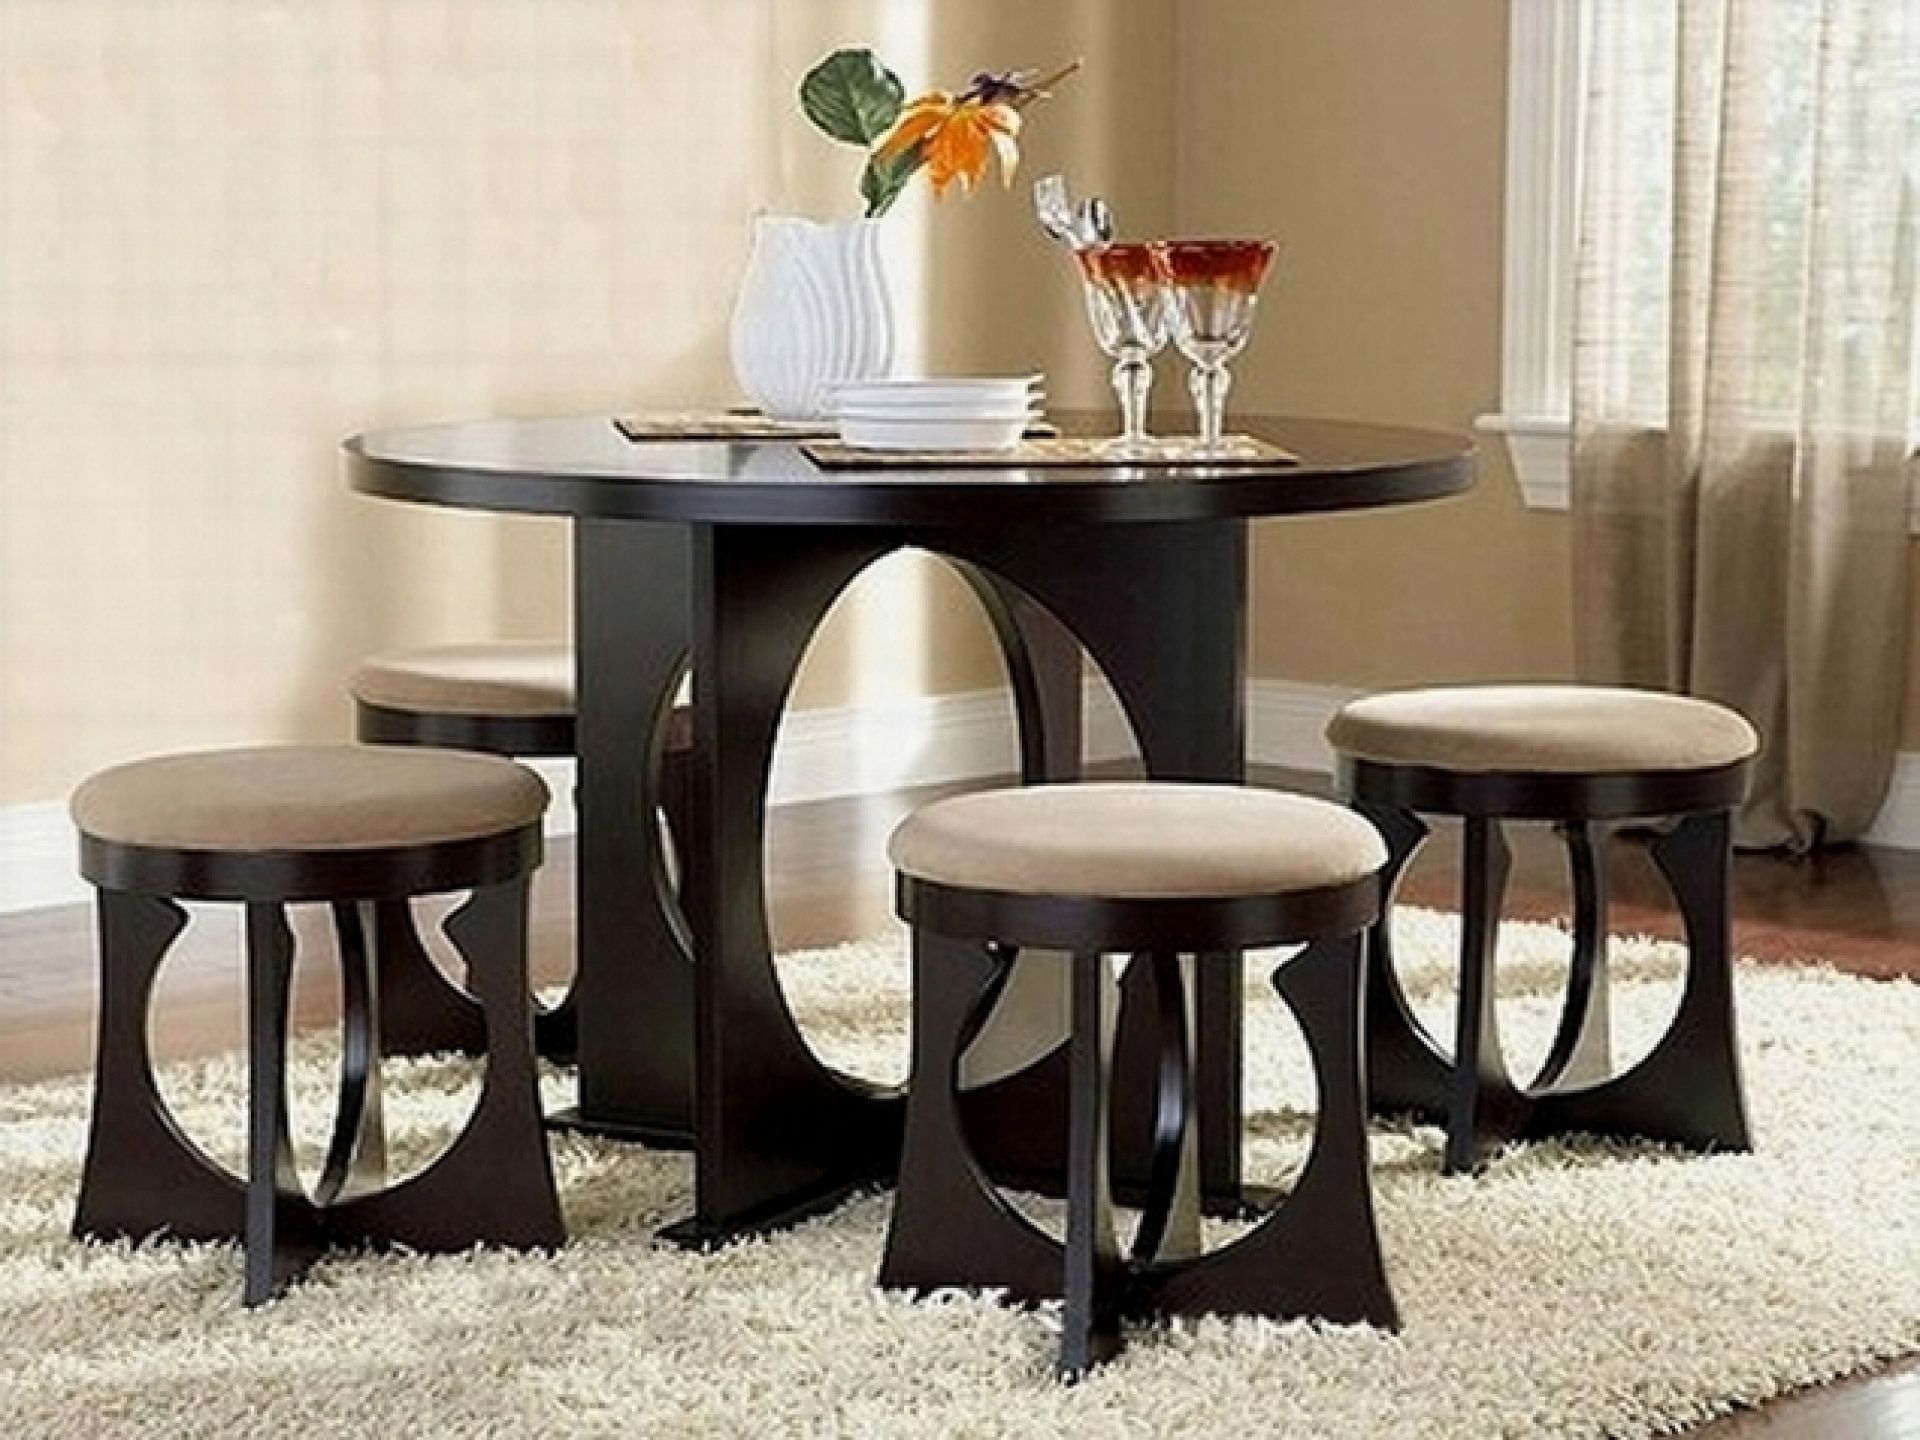 dining tables for small spaces Kitchen Table Sets Small Spaces Folding Dining Tables for Small Spaces